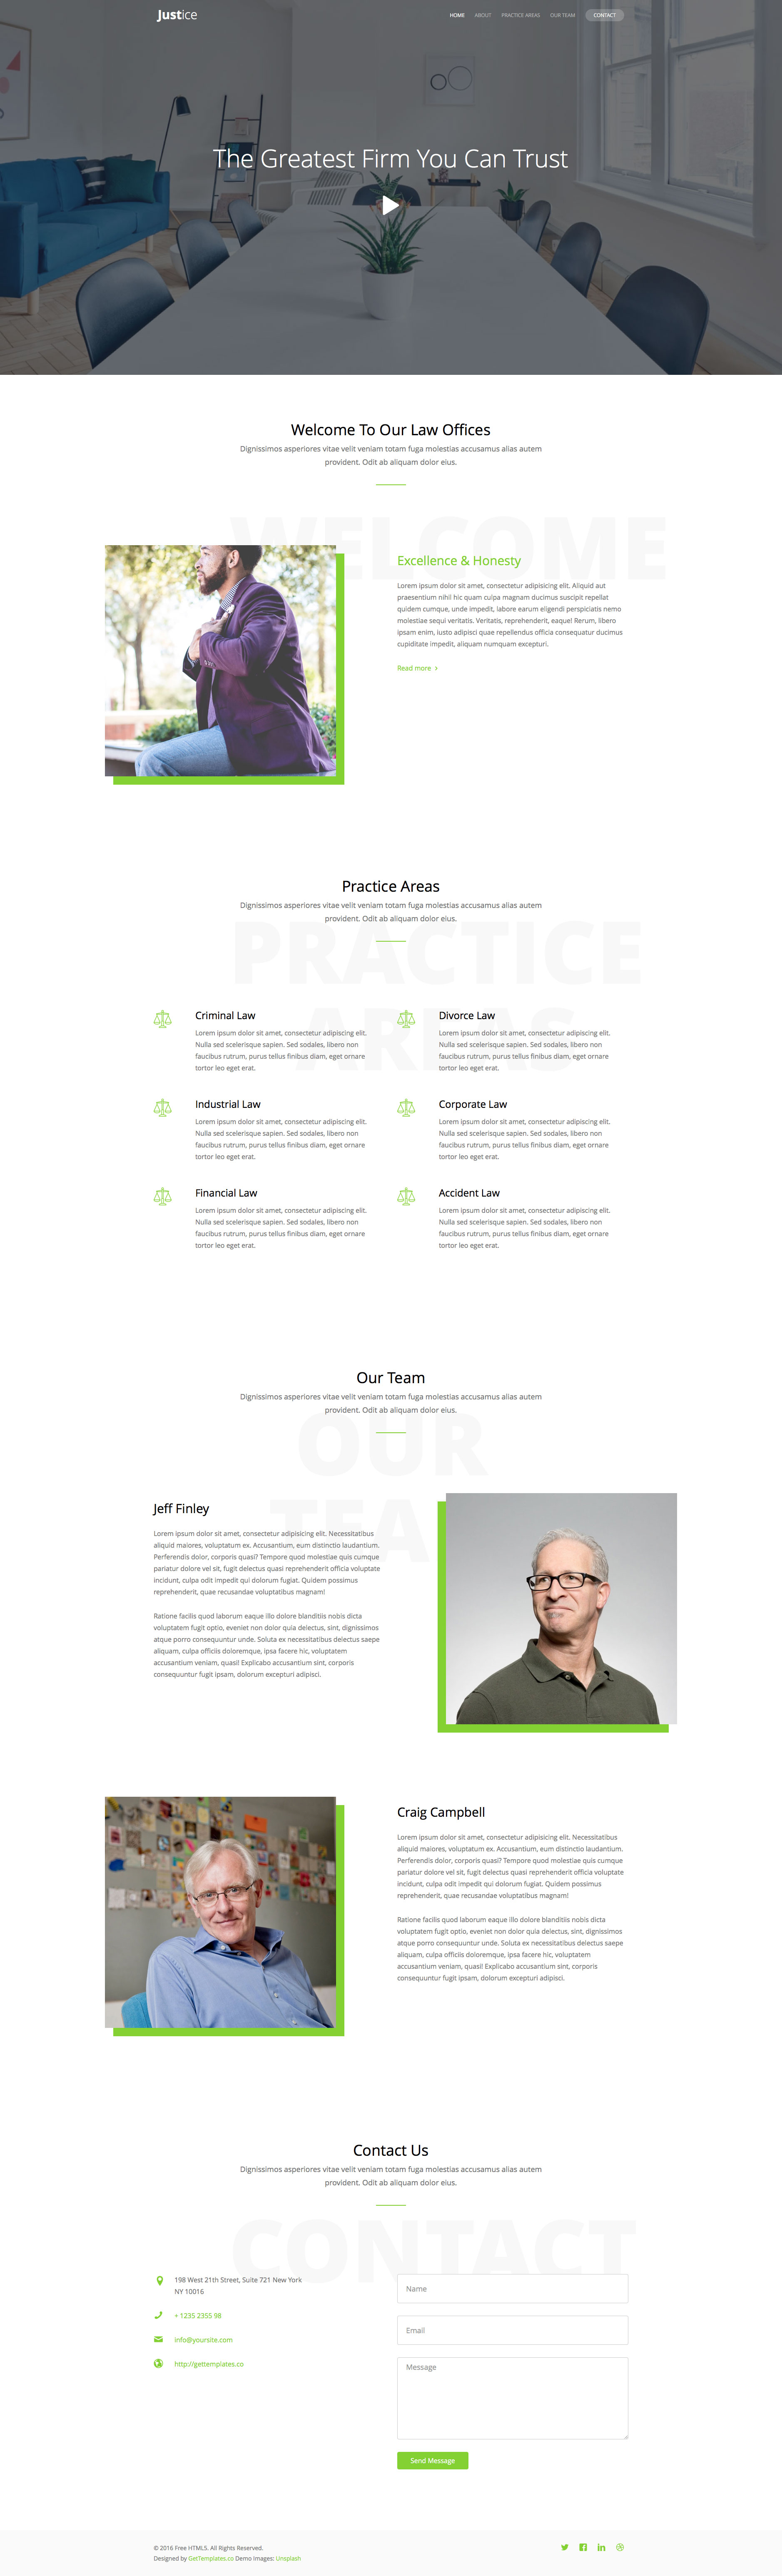 Justice is a responsive HTML5 Bootstrap one page website template, designed with clean a minimalist style. It's fully responsive and based on Bootstrap 3 framework. The perfect HTML5 template to showcase your services.